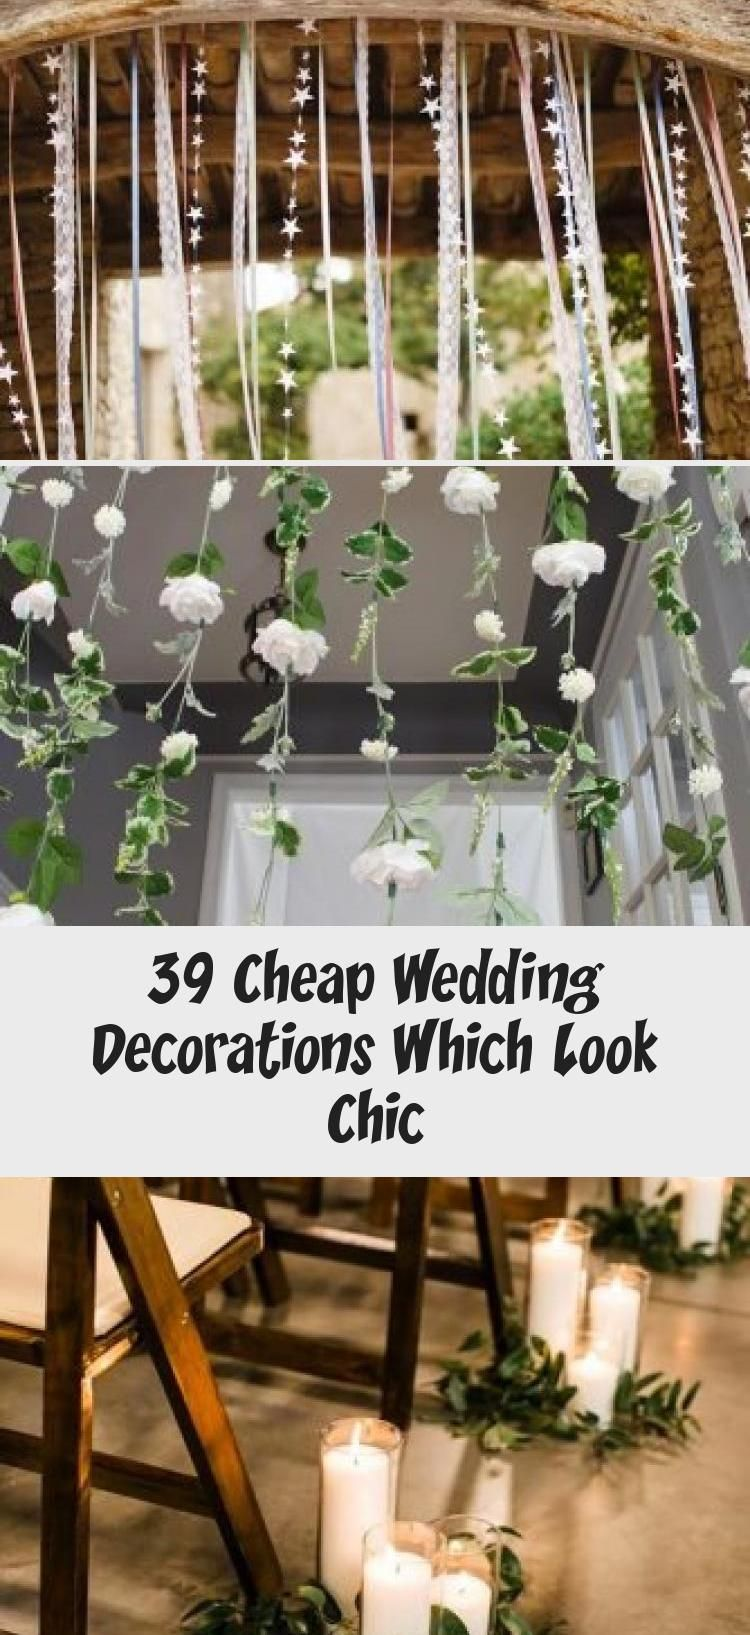 39 Cheap Wedding Decorations Which Look Chic Cheap Wedding